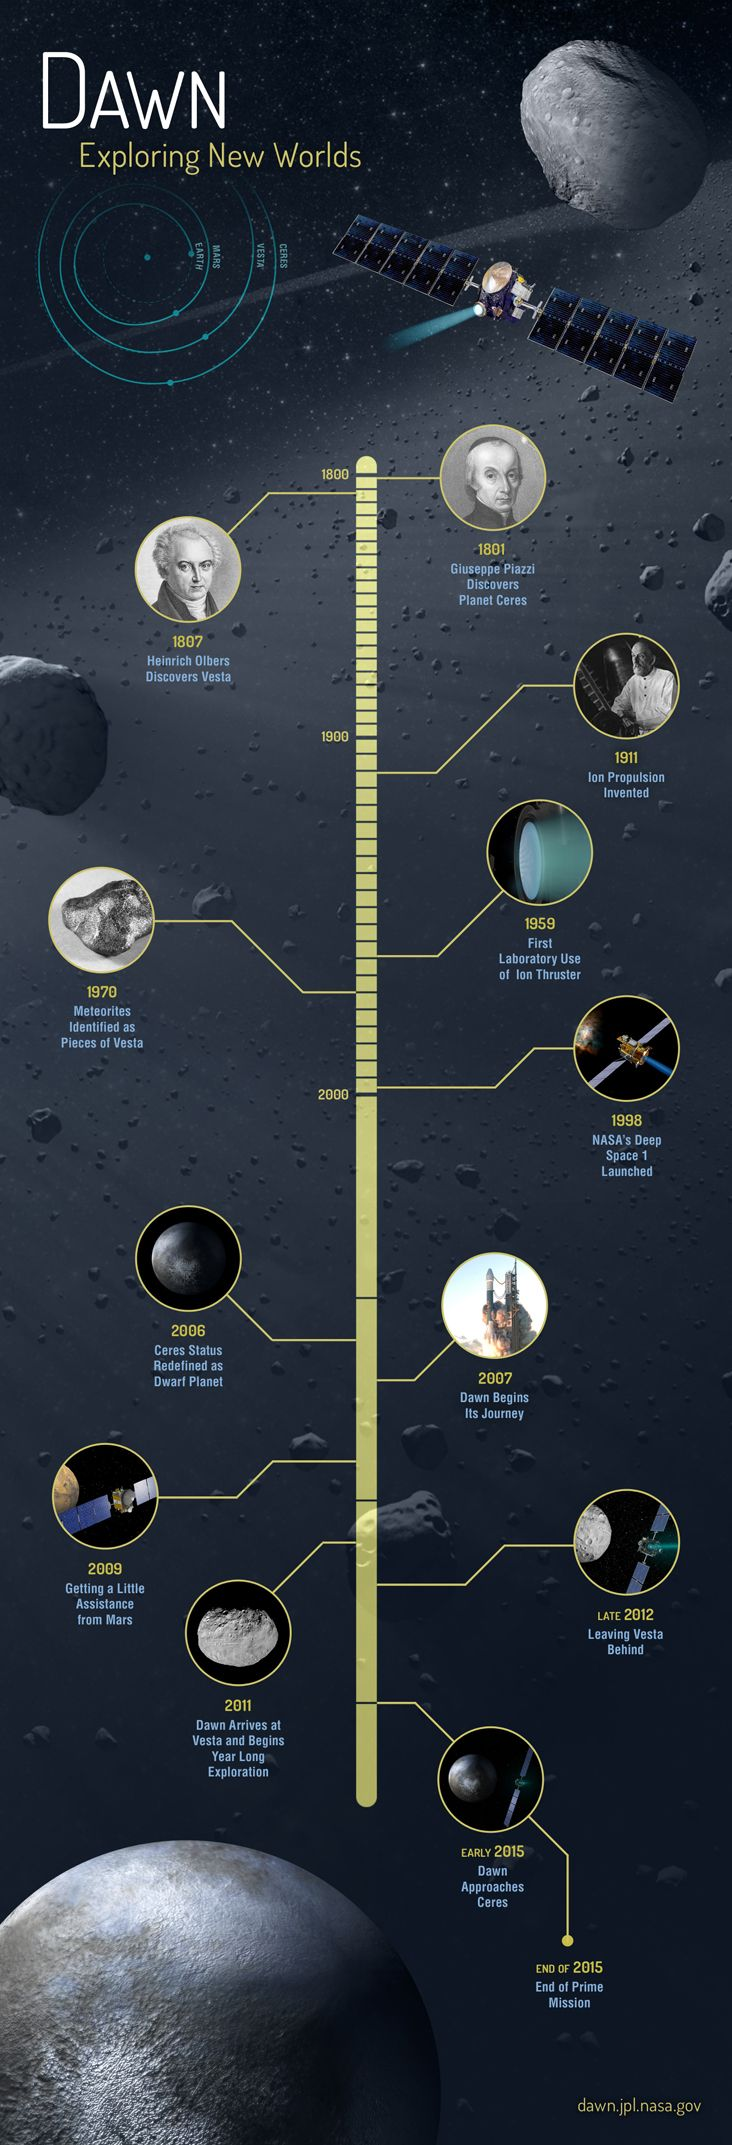 A history of protoplanets Vesta and Ceres and missions associated with the Dawn spacecraft.